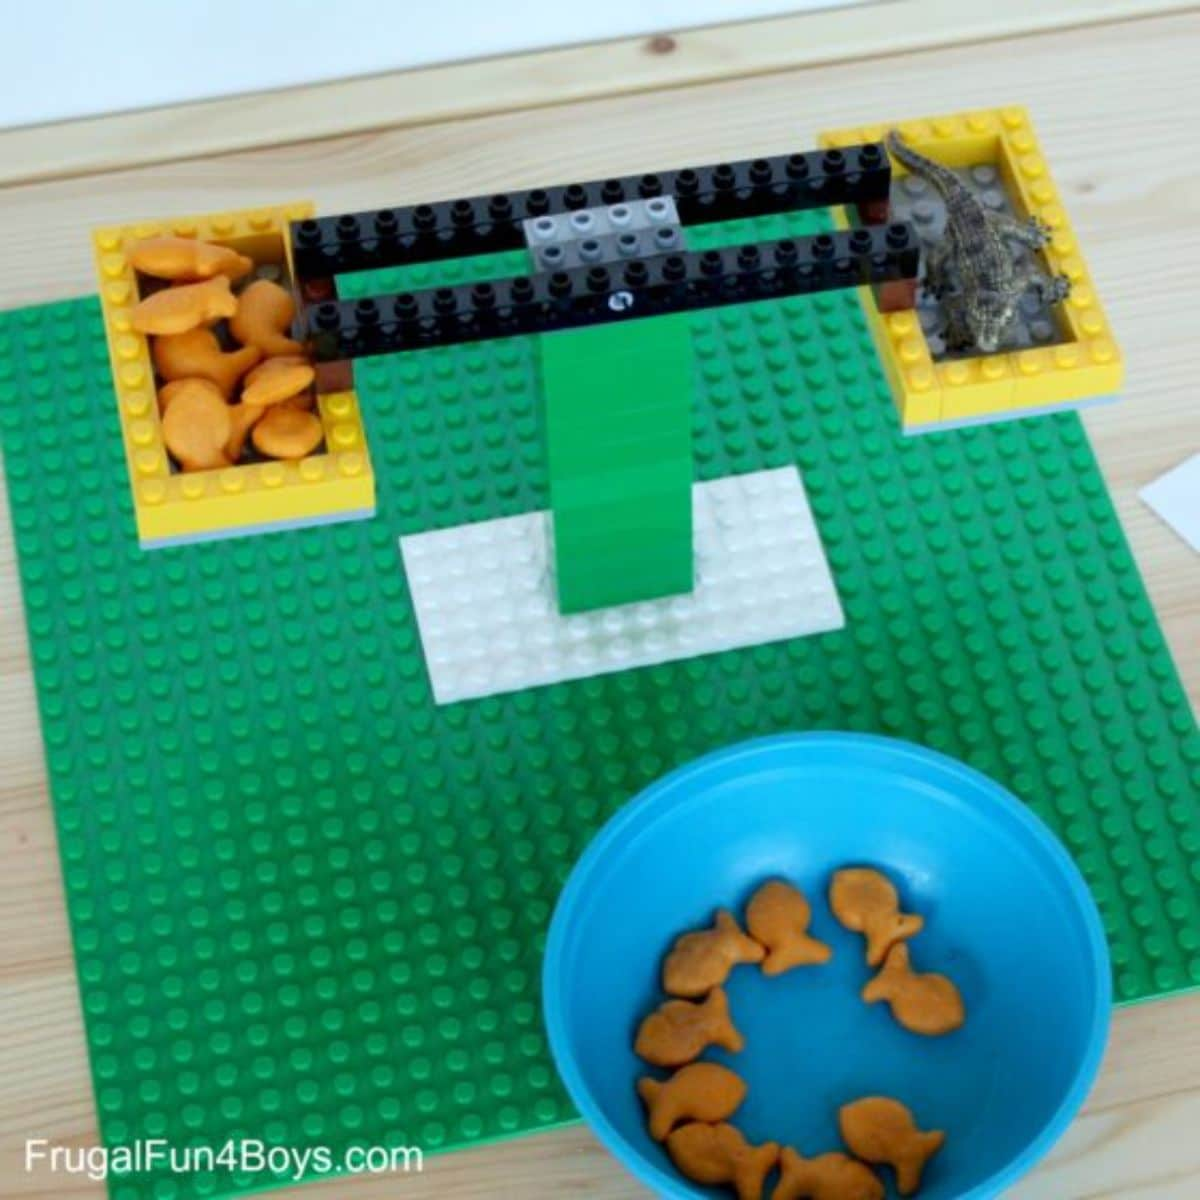 a set of scales made out of lego with 2 baskets filled with goldfish crackers, and a crocodile. In front is a blue bowl full of goldfish crackers